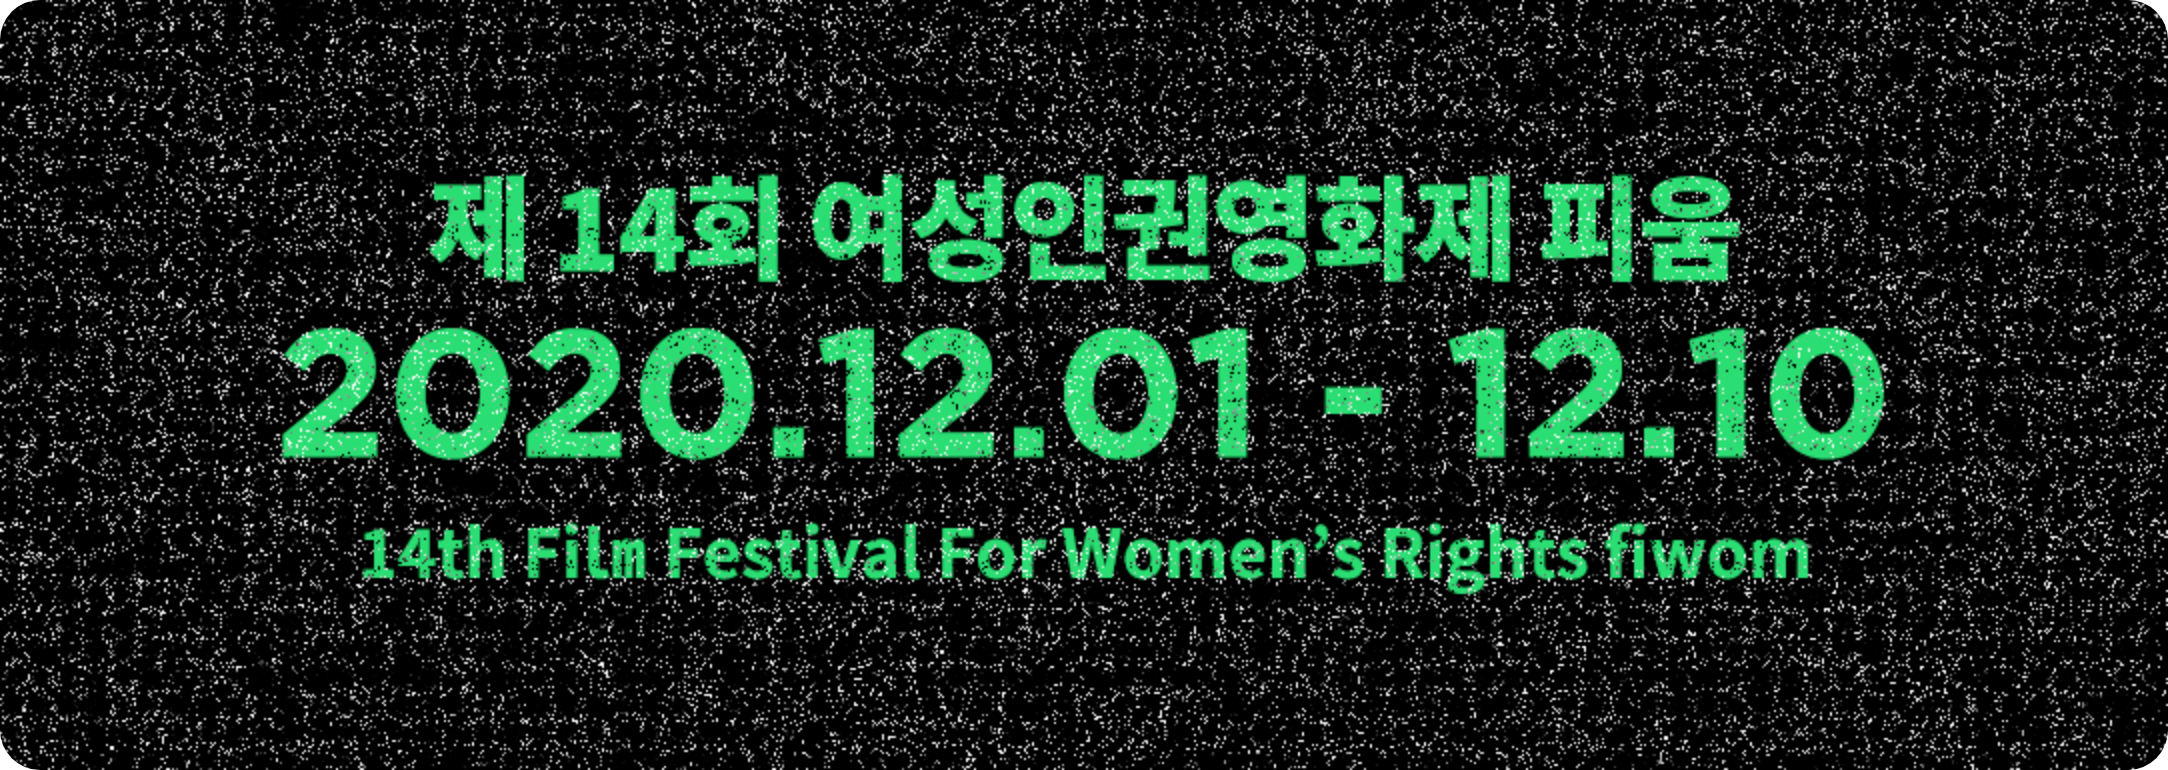 제14회 여성인권영화제 피움 - 2020.12.01 ~ 12.10 / 14th Film Festival For Women's Rights fiwom